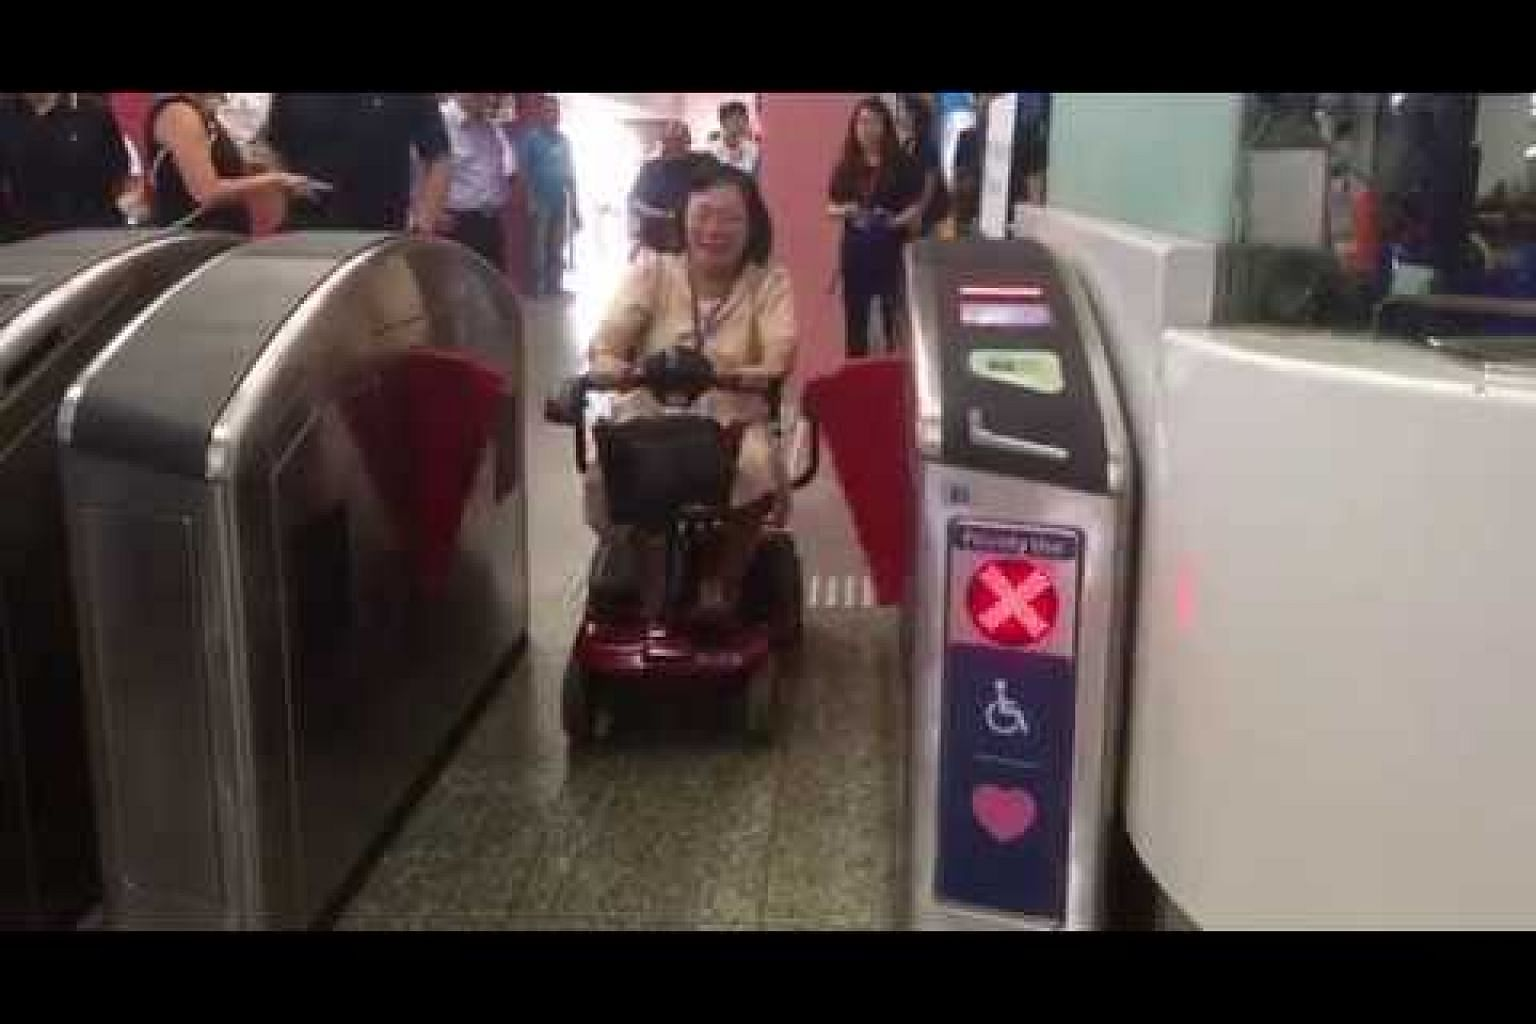 Commuters in wheelchairs enter the hands-free fare gate at Redhill MRT station